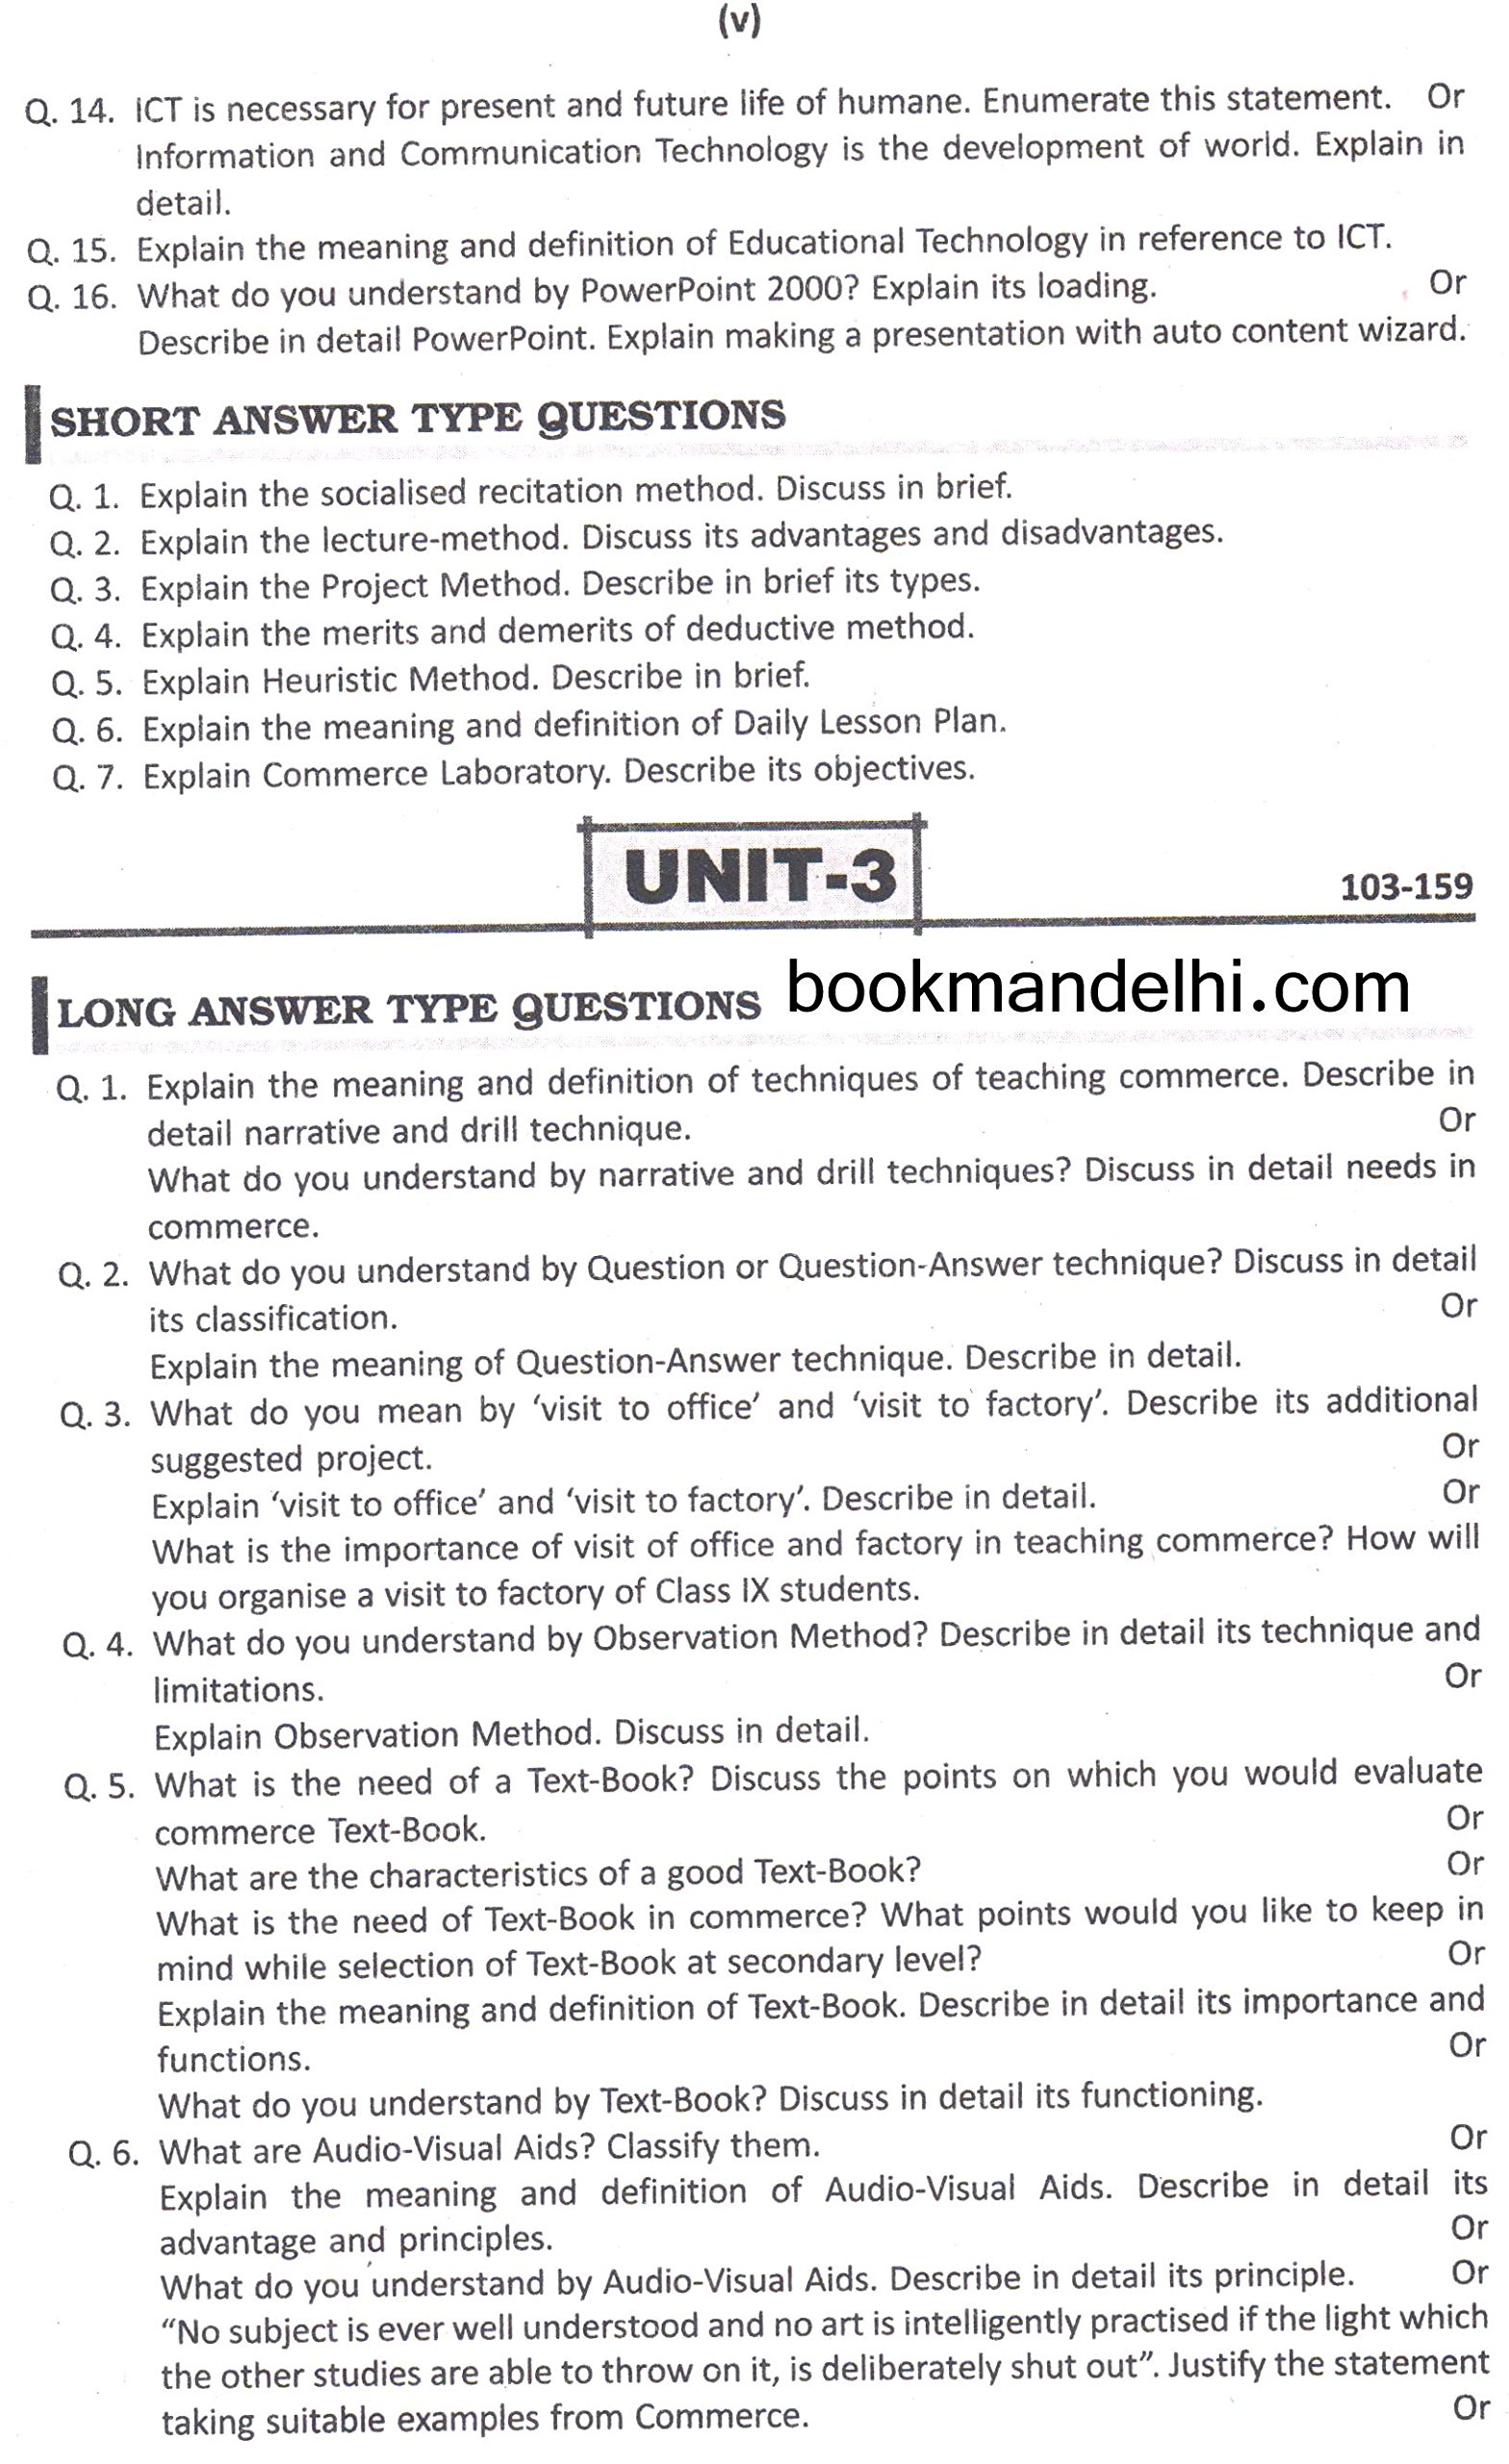 Buy Question Bank (Pedagogy Of Commerce) Book Online At Low Prices In India  | Question Bank (Pedagogy Of Commerce) Reviews U0026 Ratings   Amazon.in